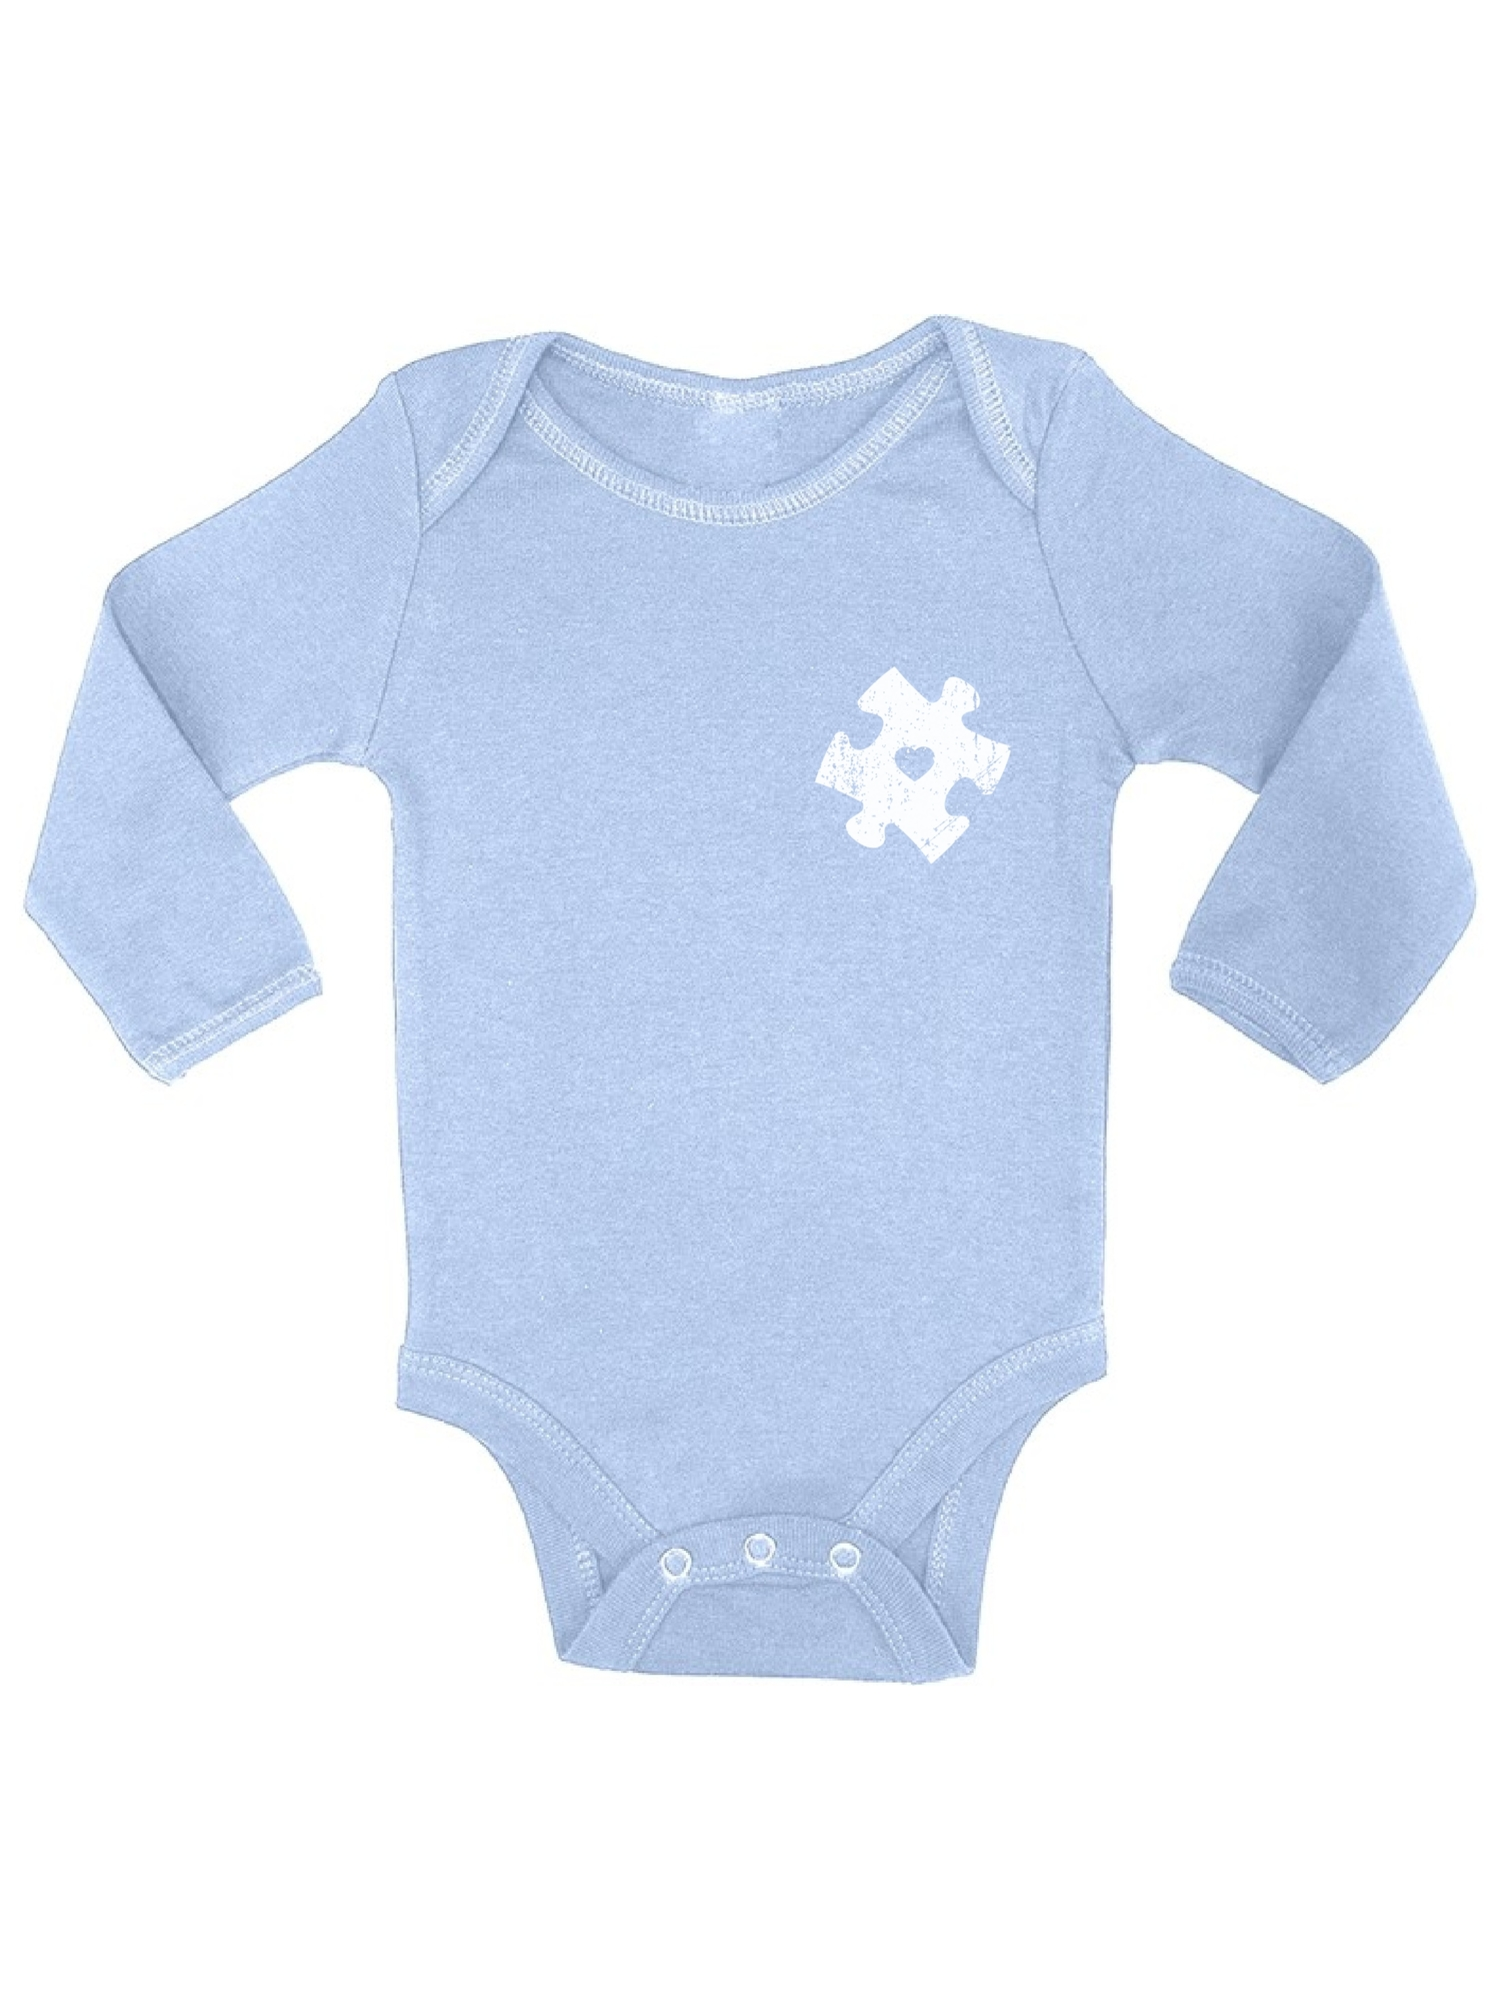 Autism Dad Awareness Newborn Unisex Baby Short-Sleeve Organic Cotton Bodysuit Rompers Outfits One-Piece